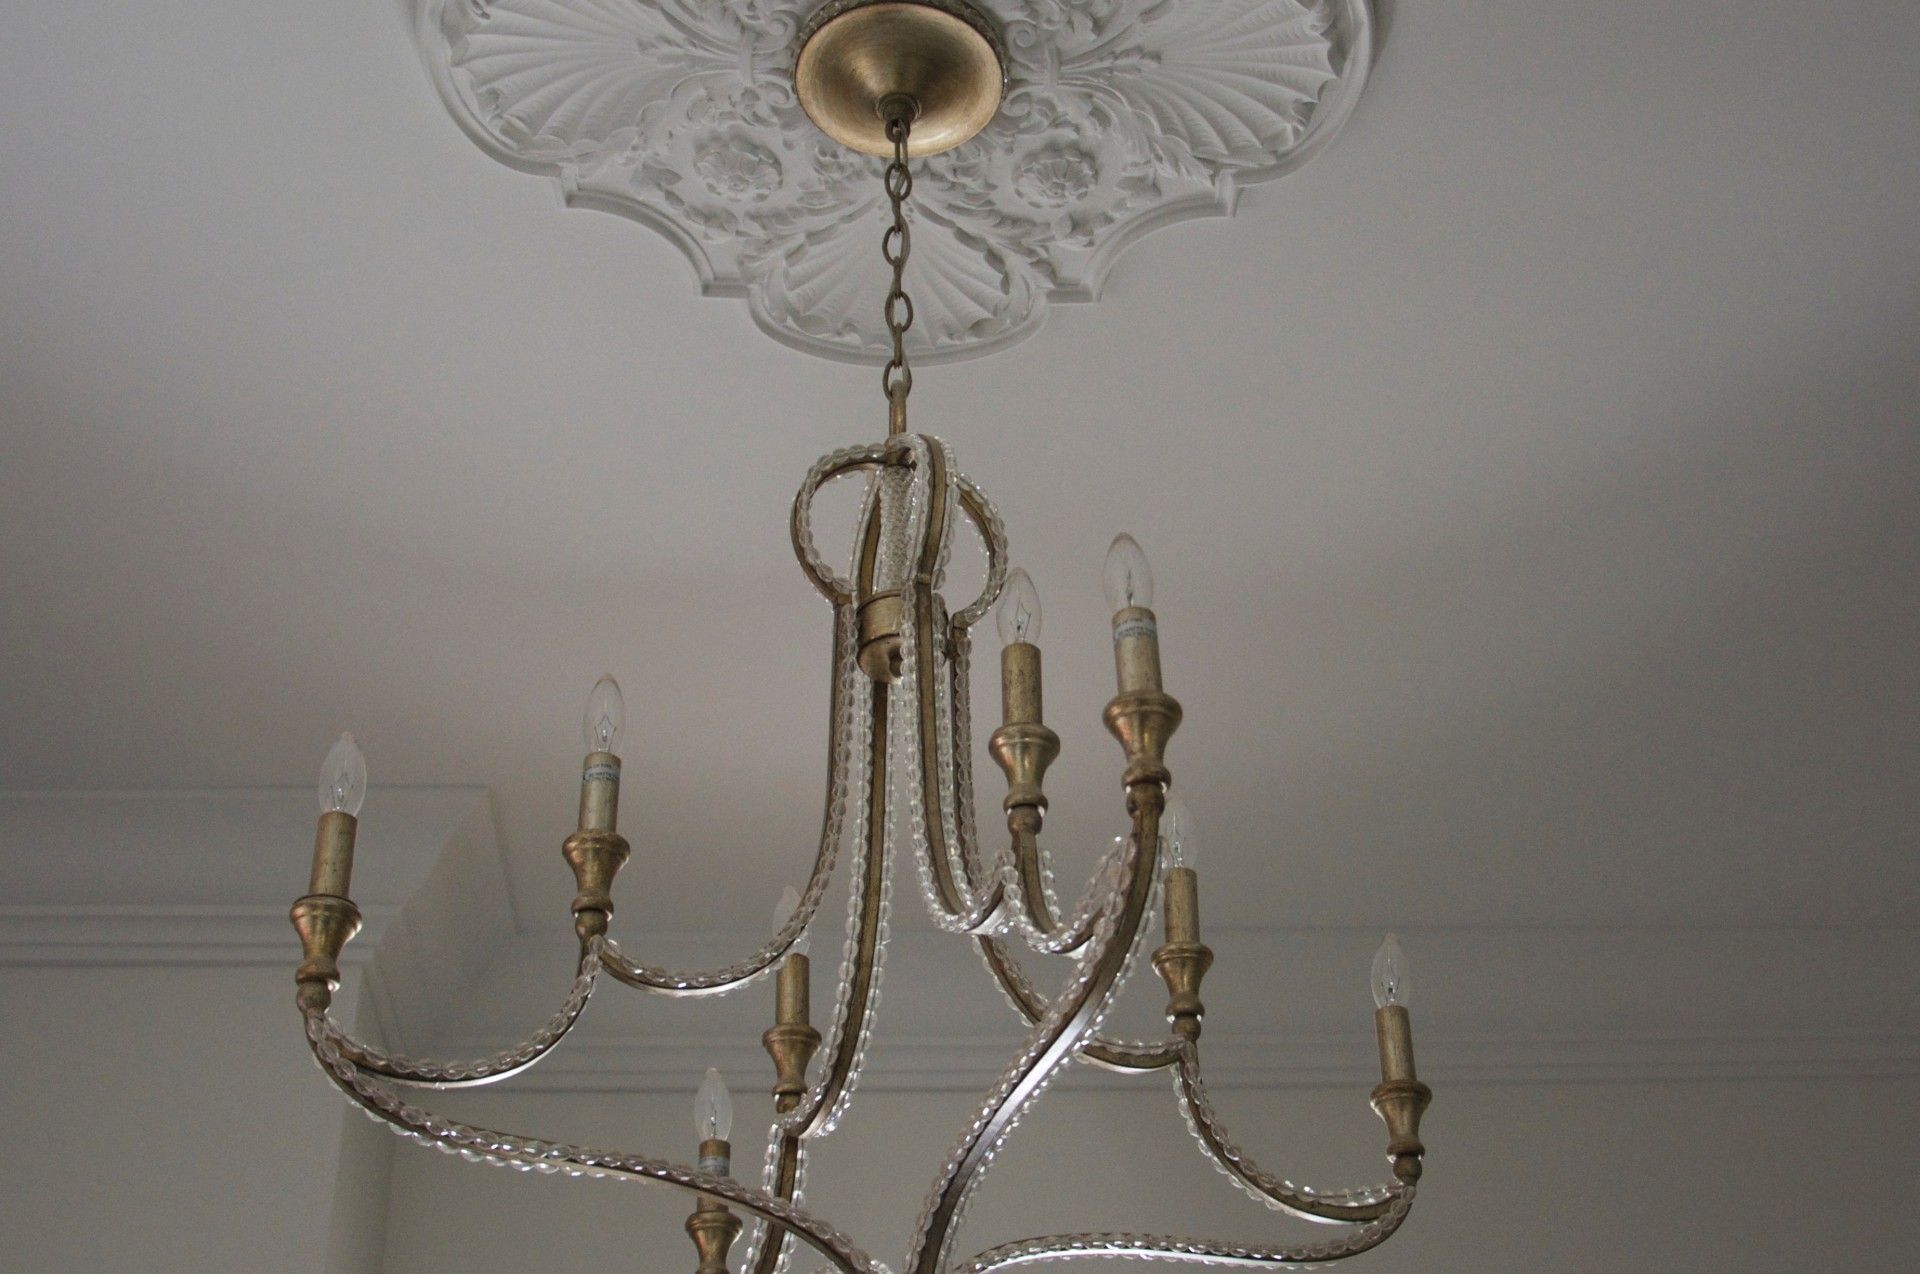 what size full for class chandelier medallion foyer chandelierawesome ceiling need make on own hanging trgn plate medall contemporary lights chandeliers of light fixture your crystal